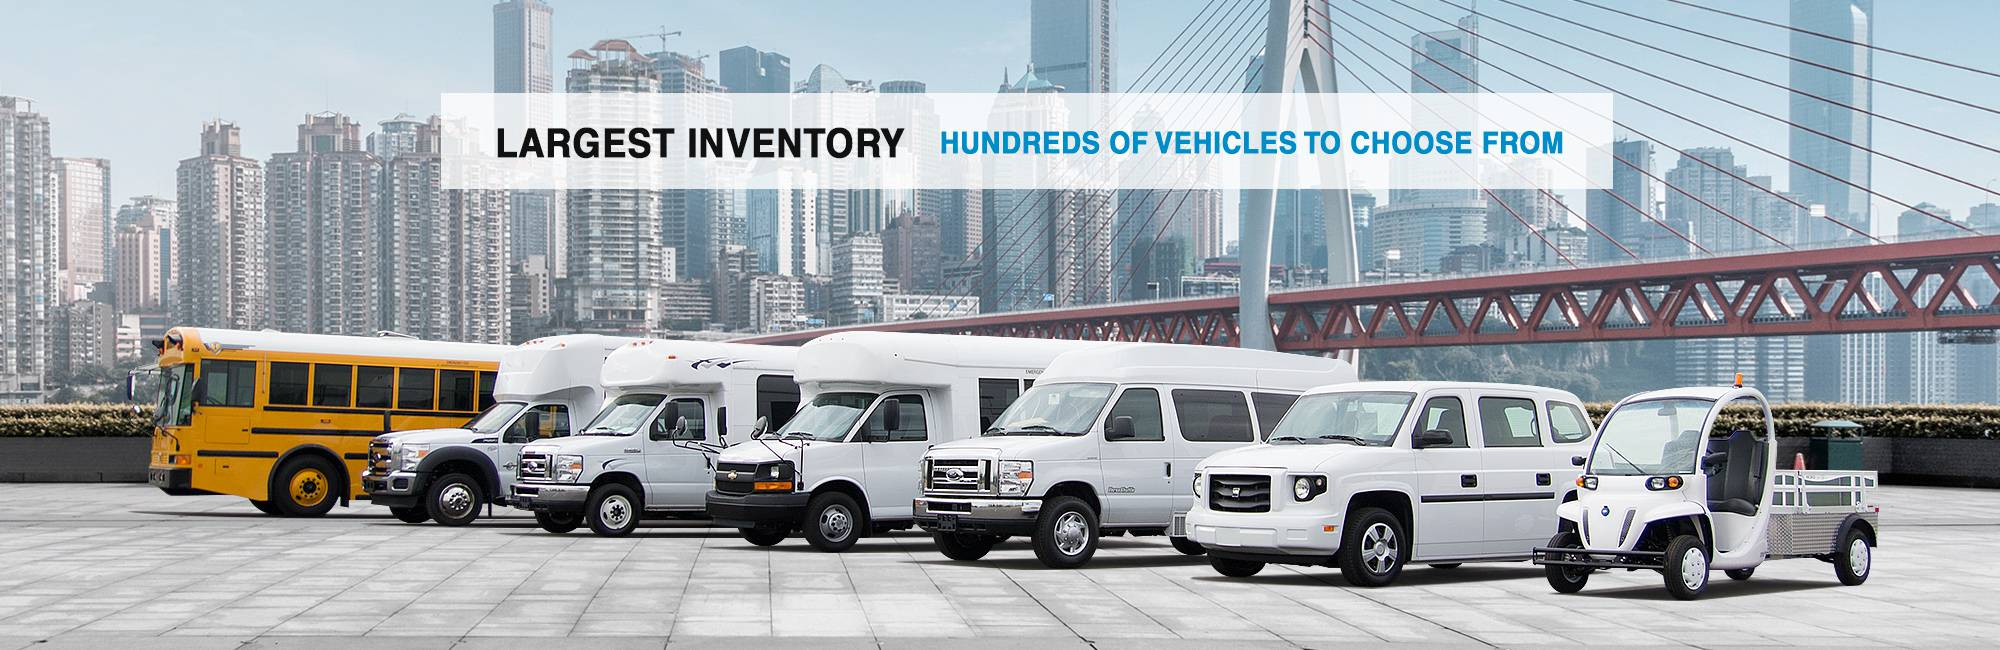 Largest Bus Inventory